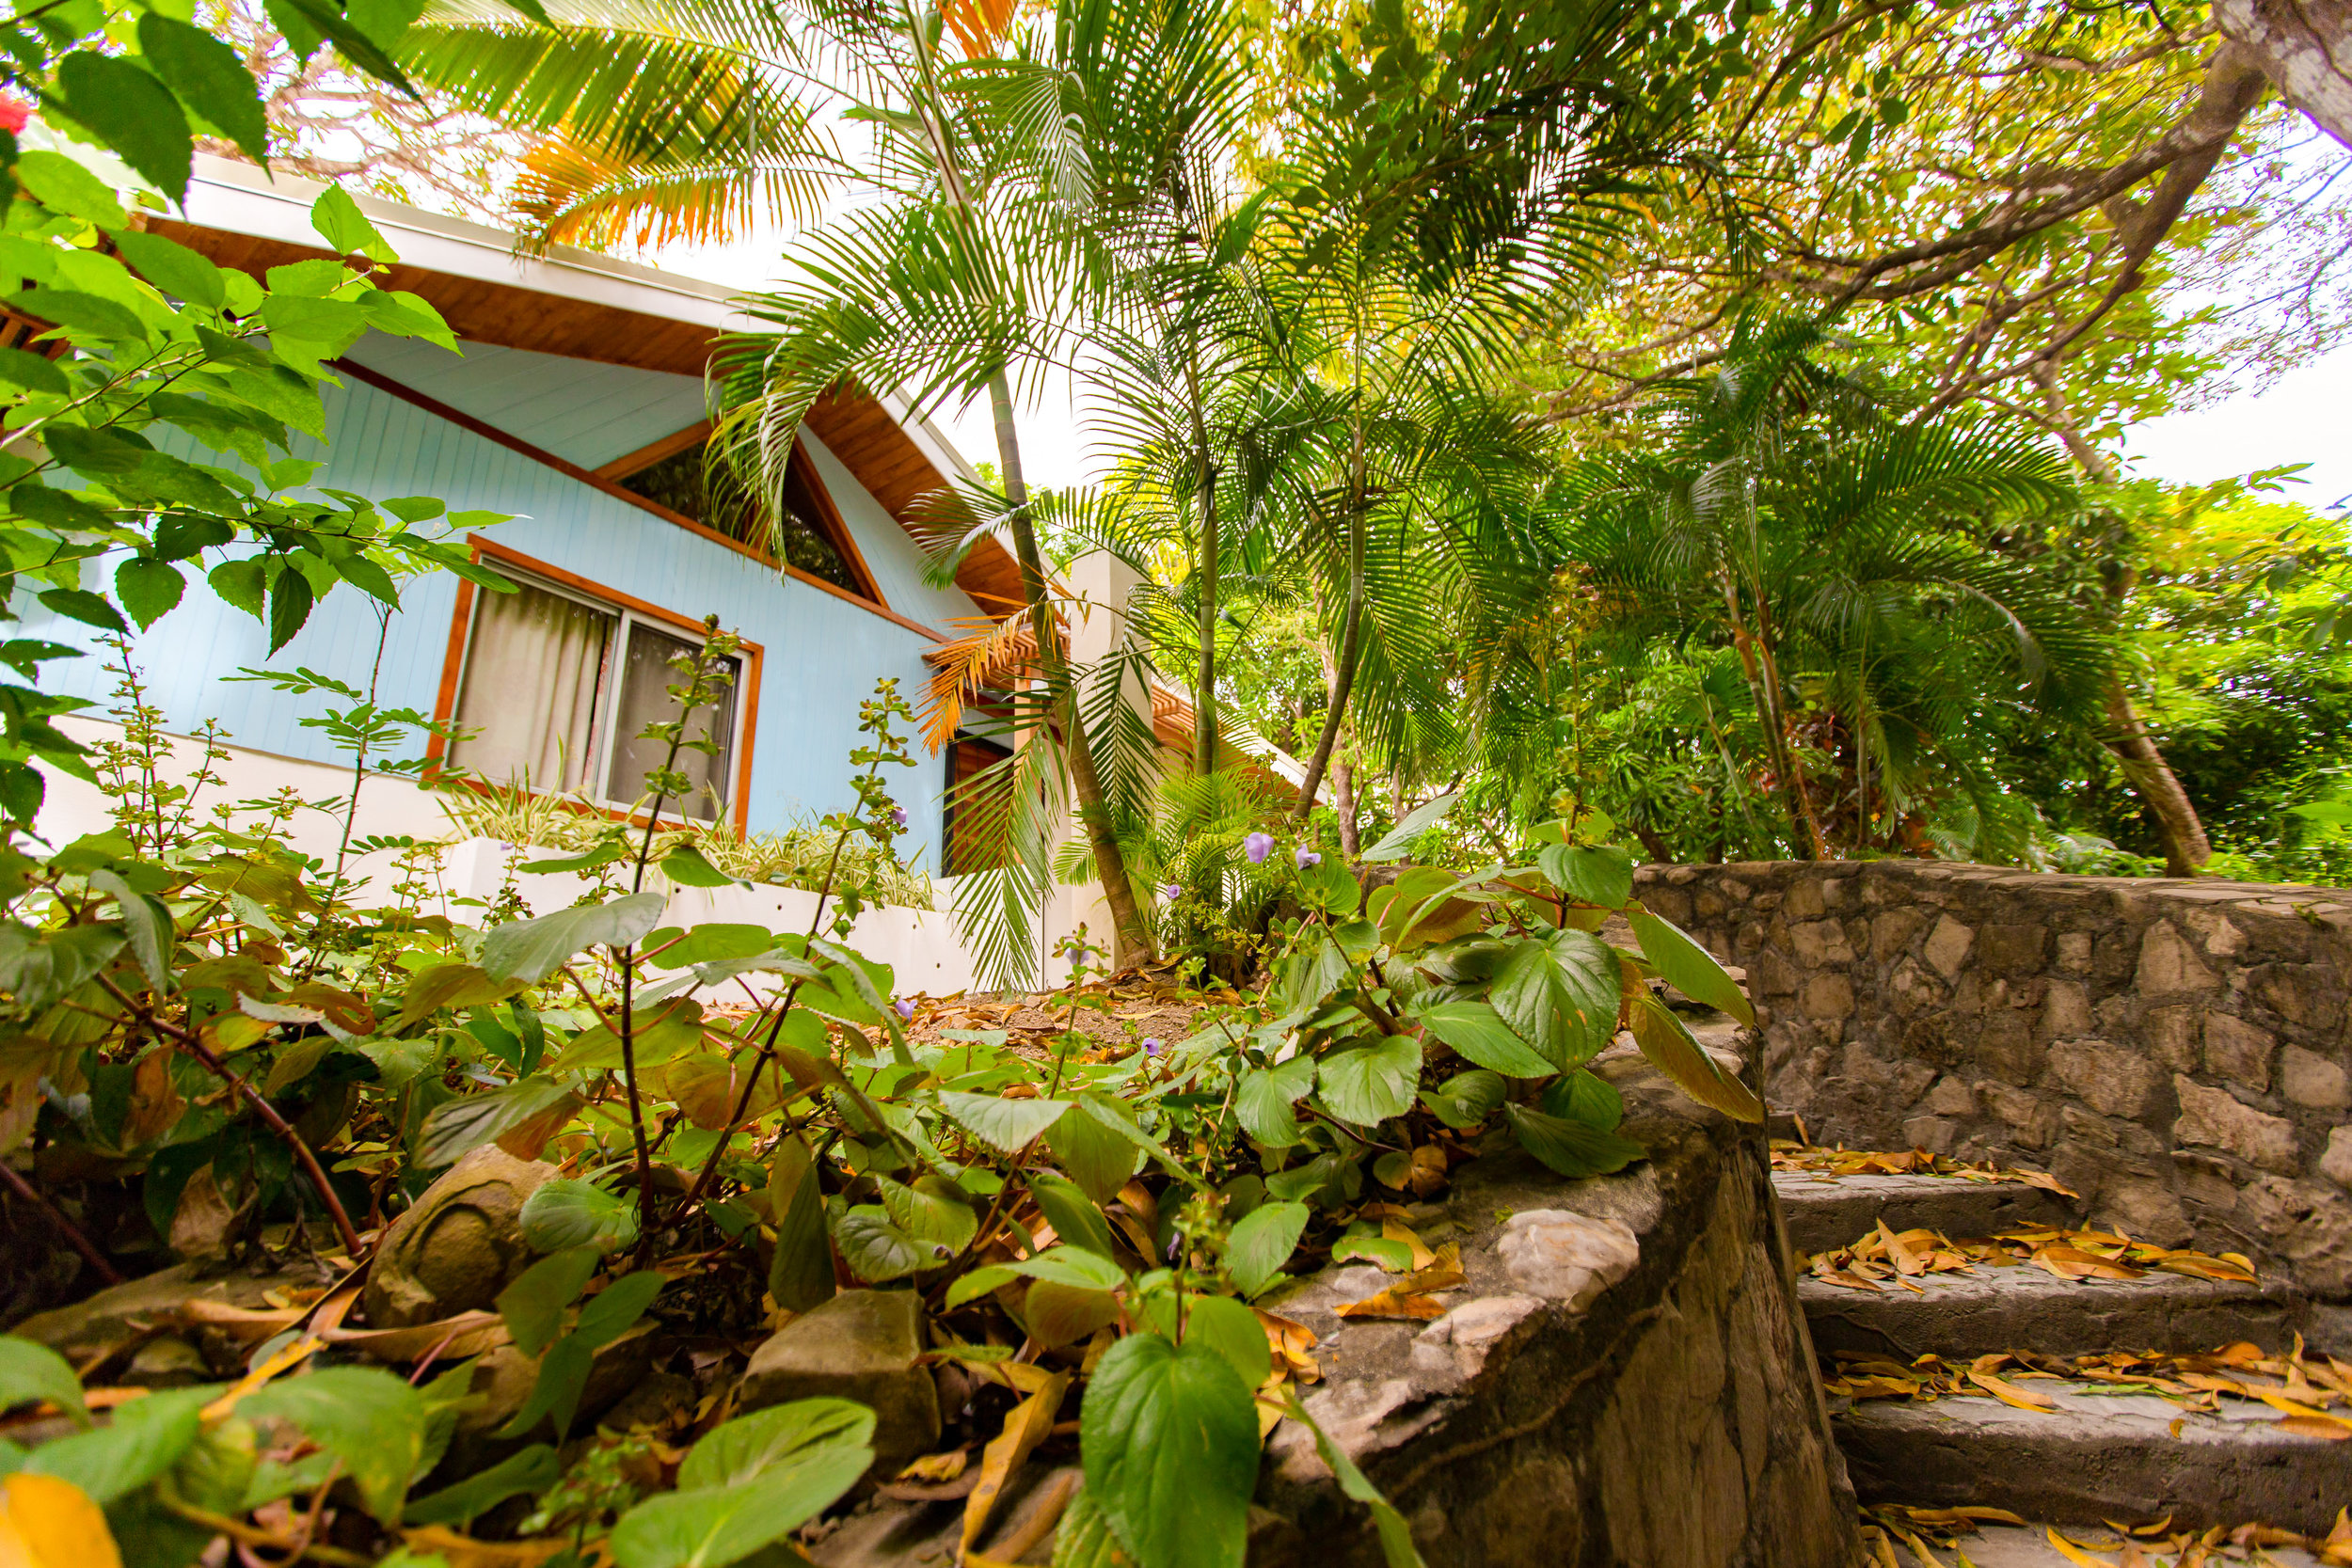 1 Bedroom 2 Bathrooms Electric Stove Fully Equipped Kitchen Walking distance to Playa Guiones WIFI Air-Conditioned  CLICK FOR MORE DETAILS